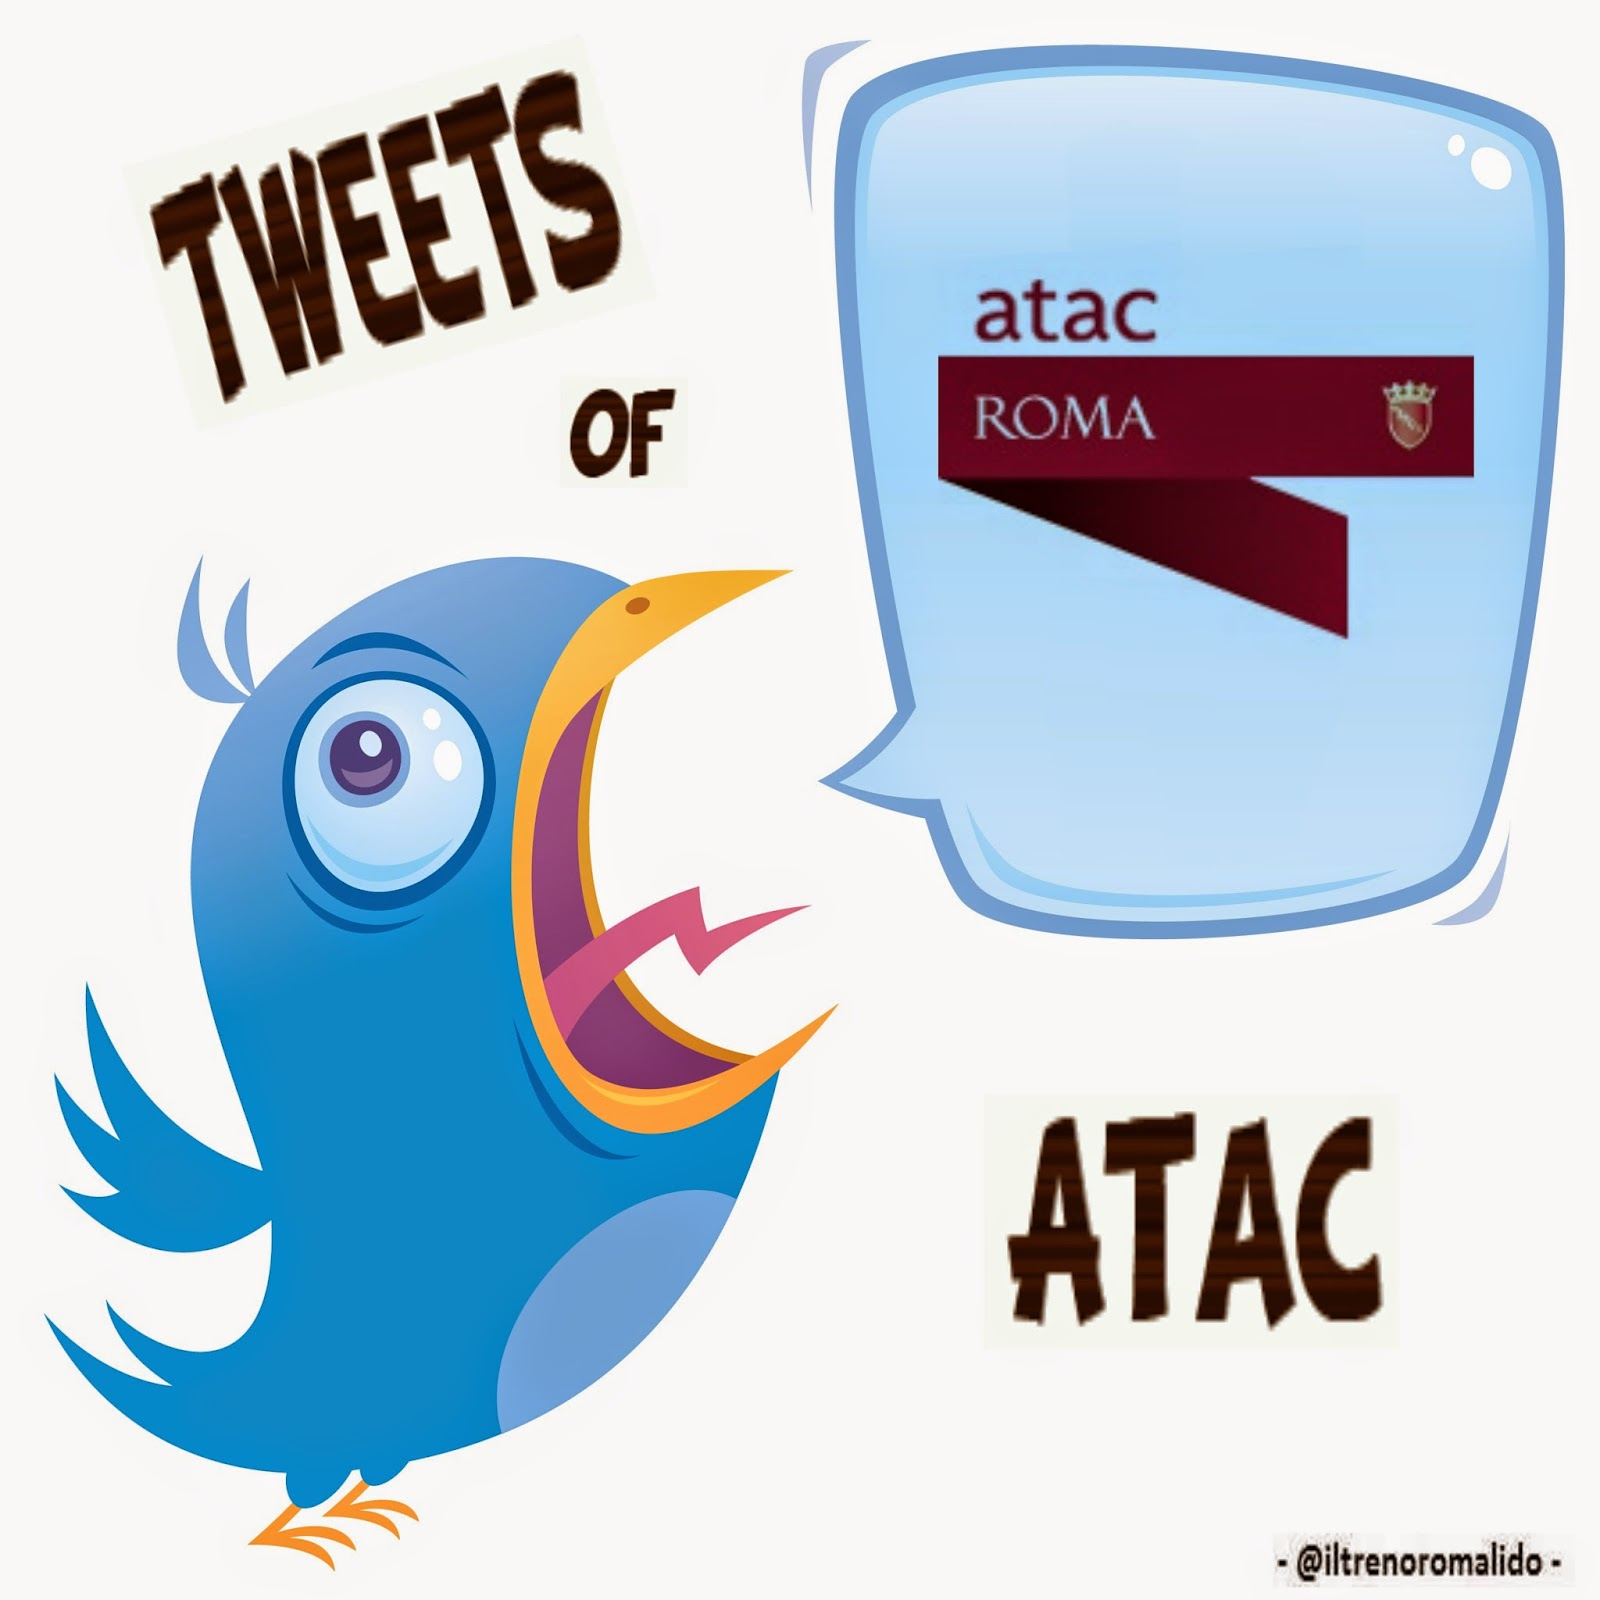 Tweets of Atac